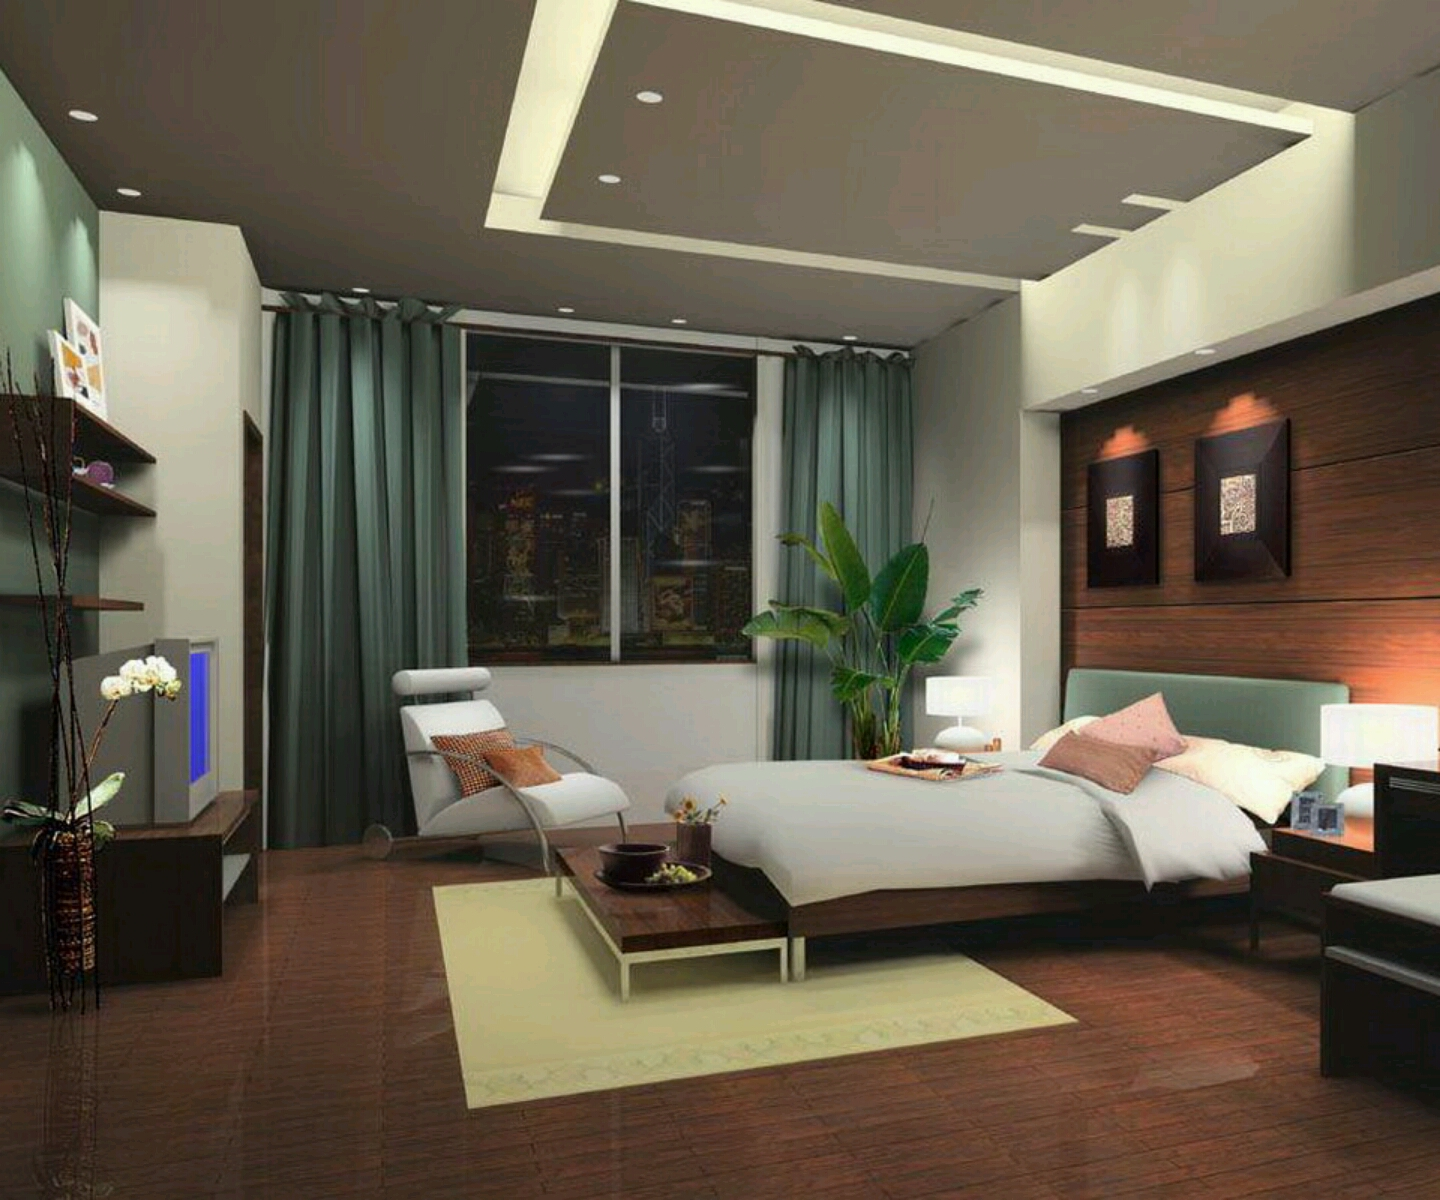 New home designs latest modern bedrooms designs best ideas for Modern bedroom interior designs